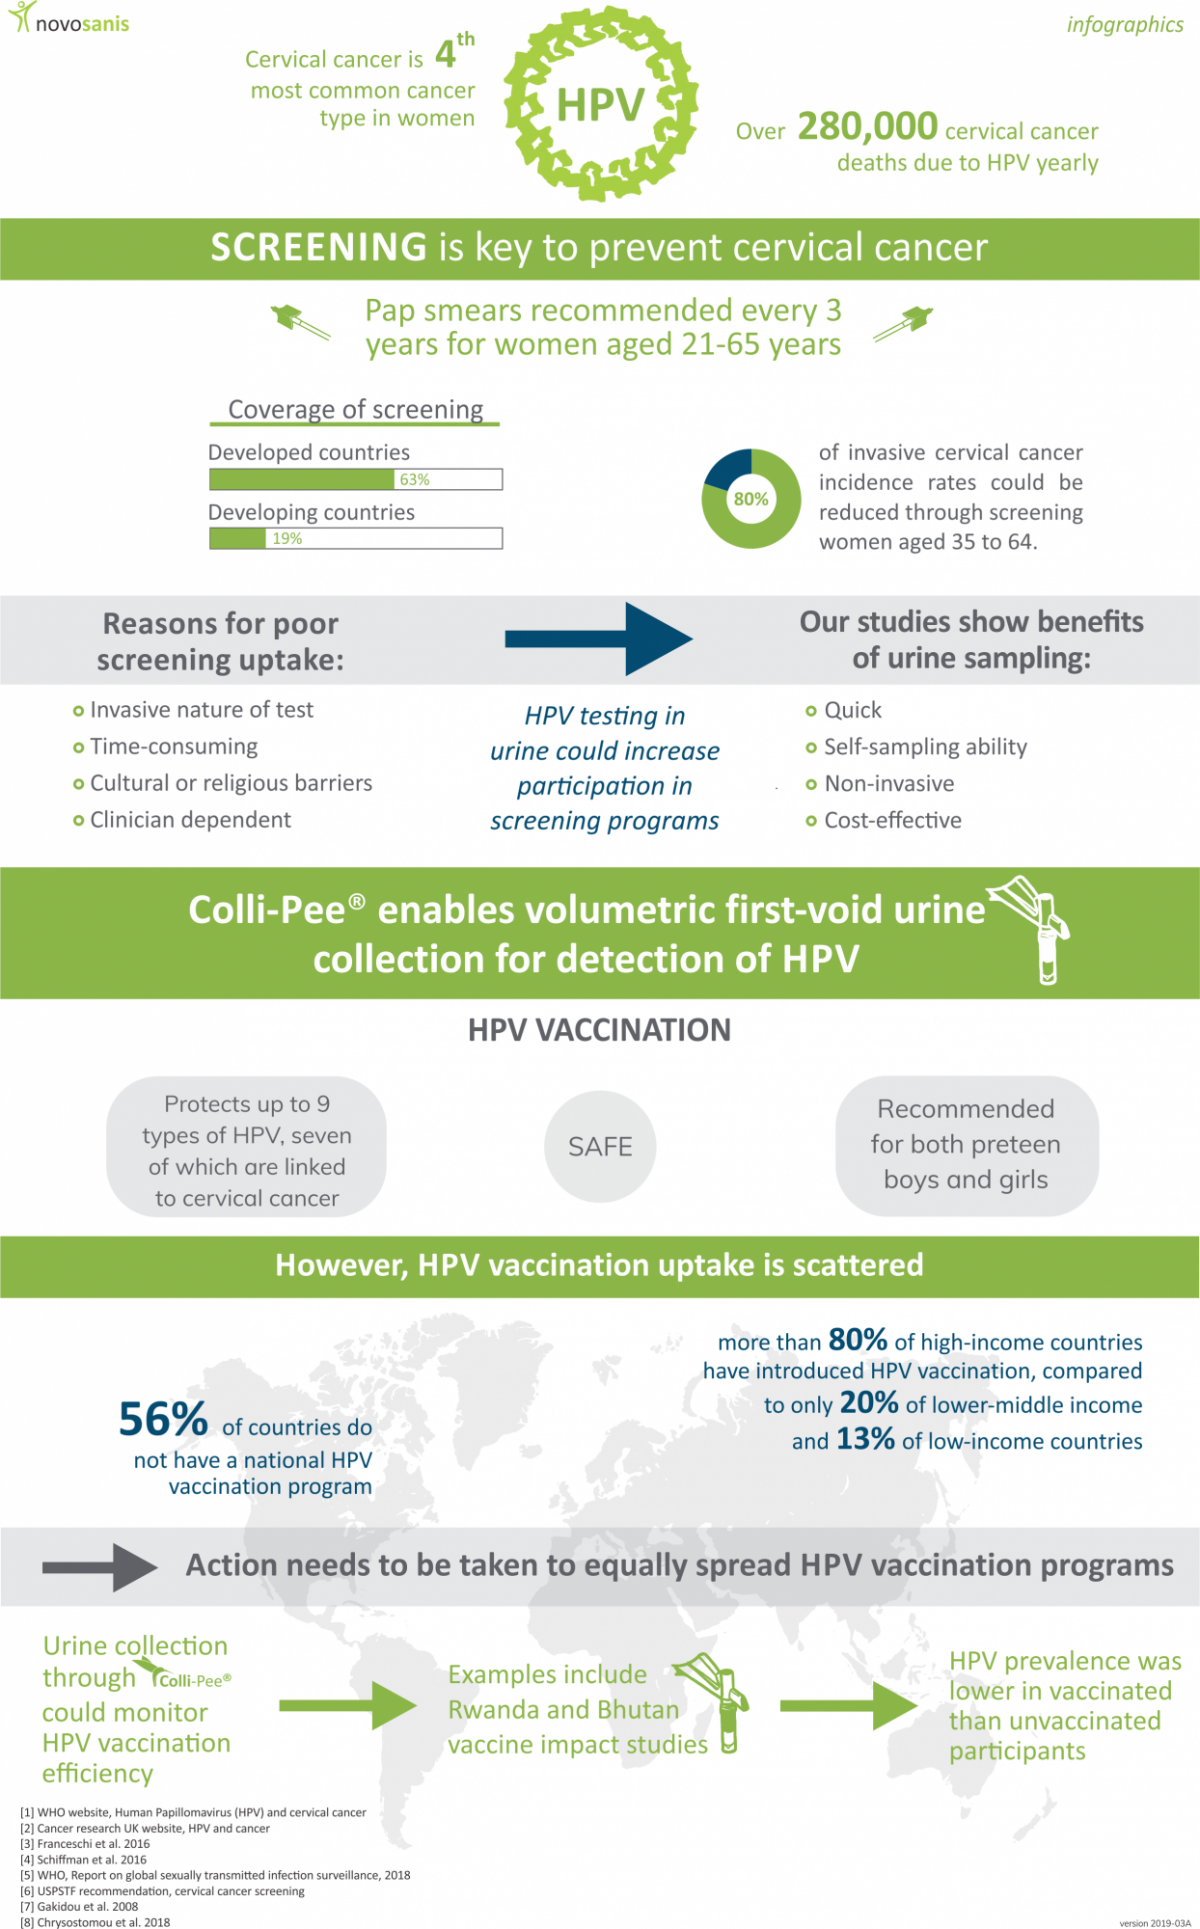 hpv and urine infection